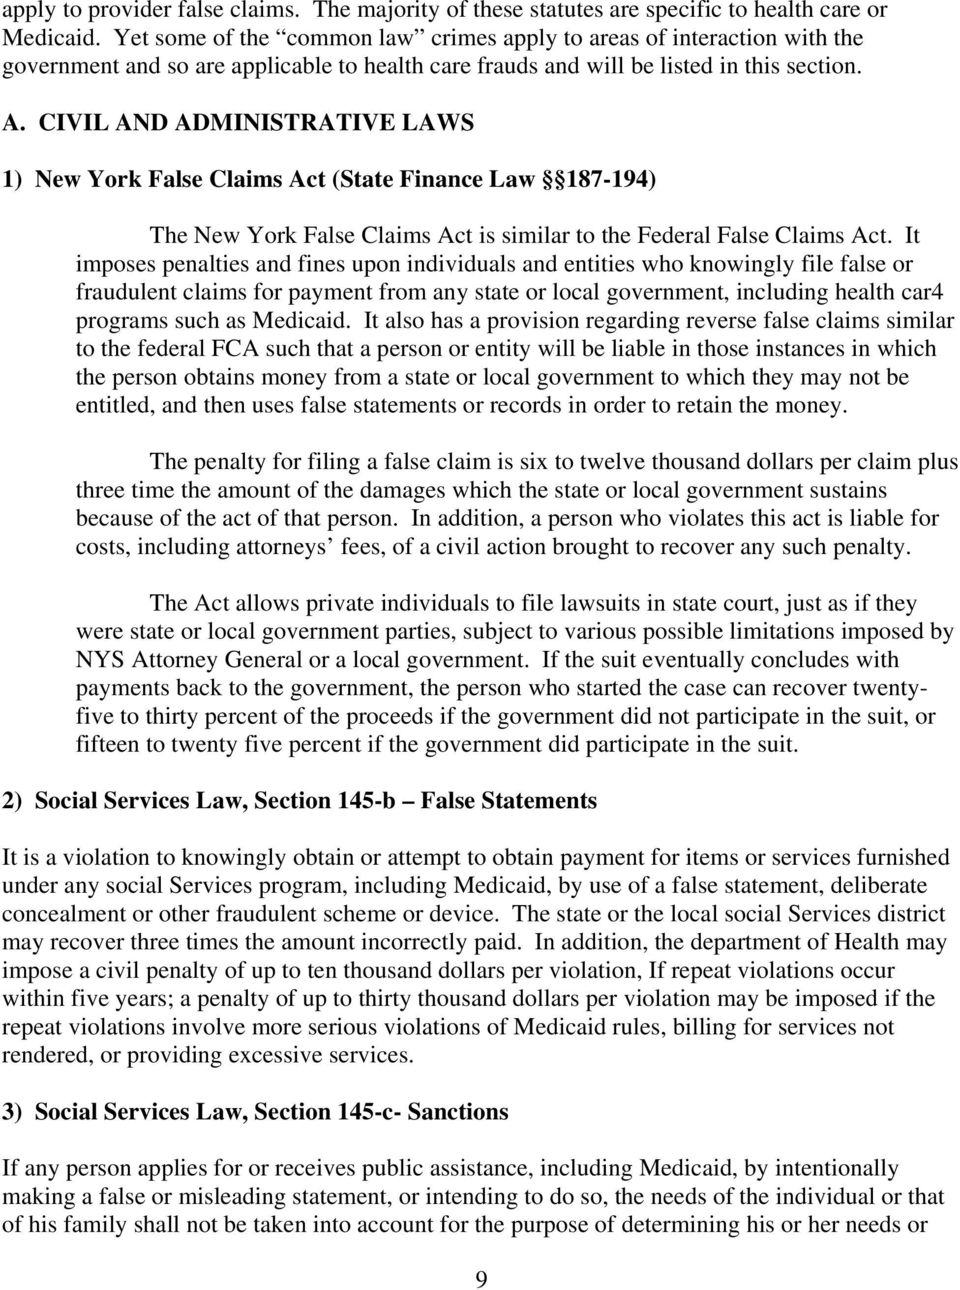 CIVIL AND ADMINISTRATIVE LAWS 1) New York False Claims Act (State Finance Law 187-194) The New York False Claims Act is similar to the Federal False Claims Act.